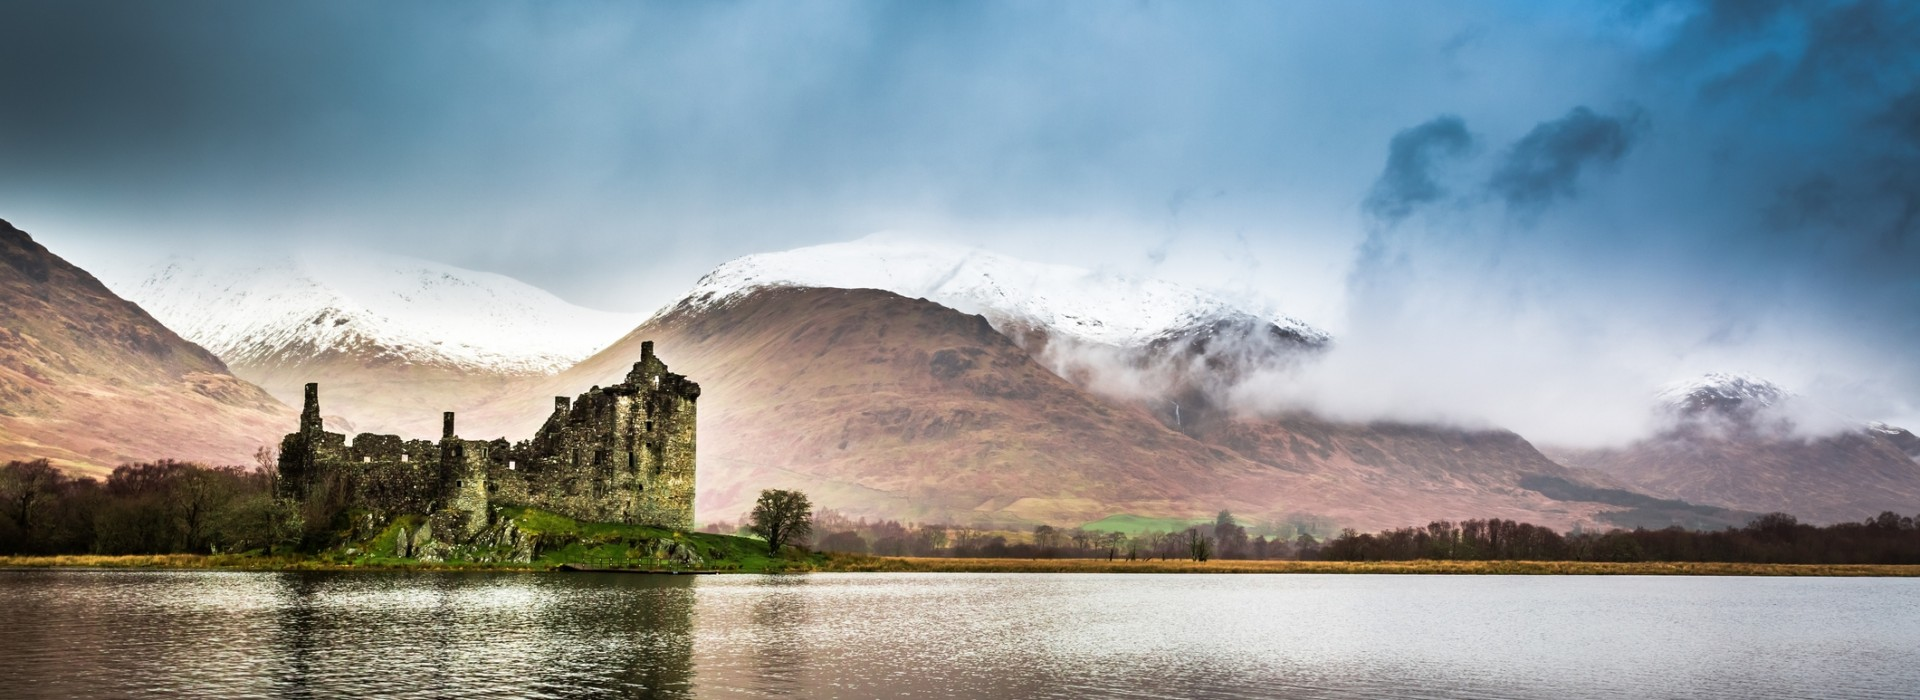 Travelling Scotland - Tours and Trips in Scotland